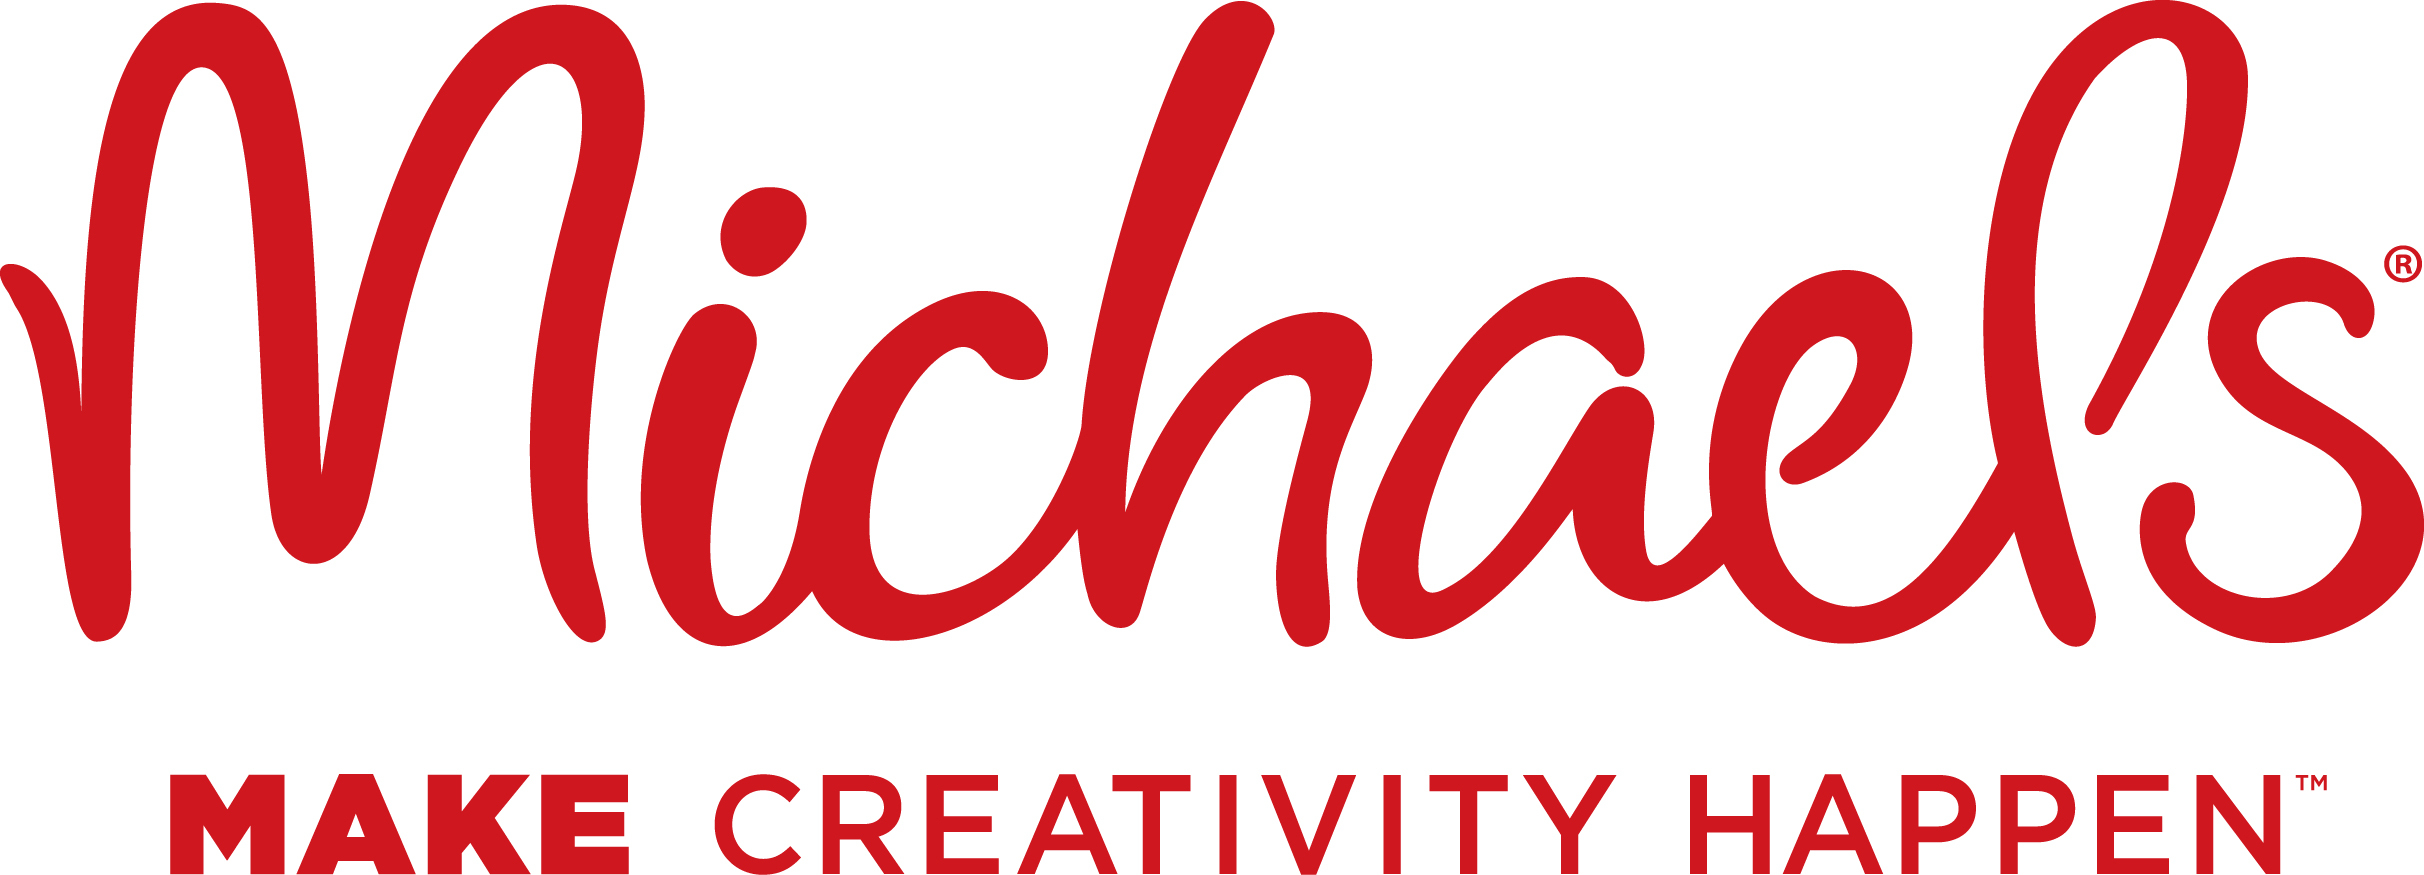 the michaels companies inc launches new online custom framing business business wire - Michaels Framing Prices